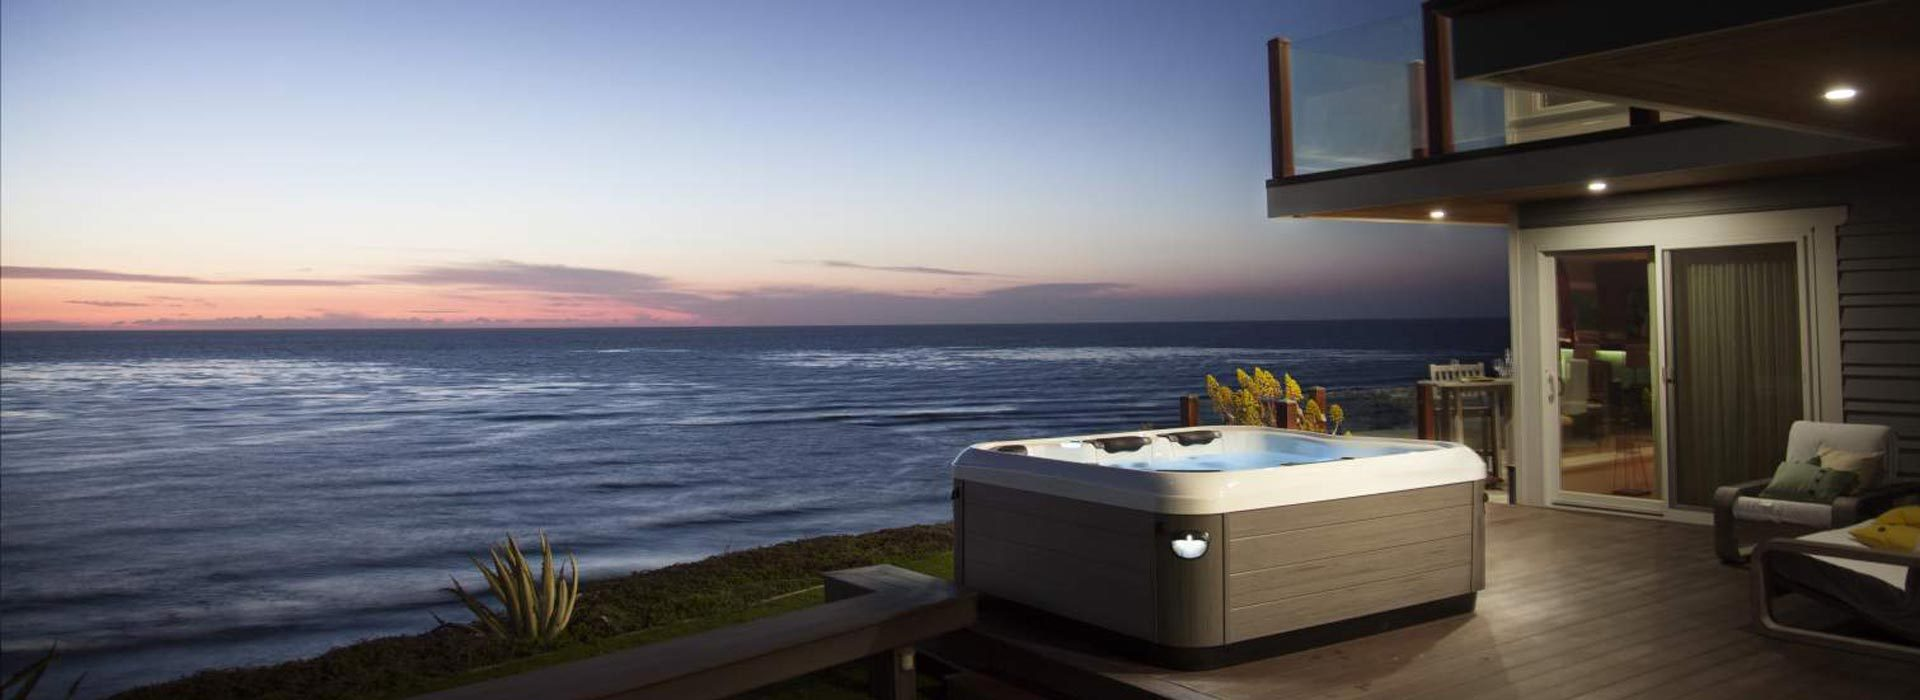 Villeroy-Outdoor-Whirlpool